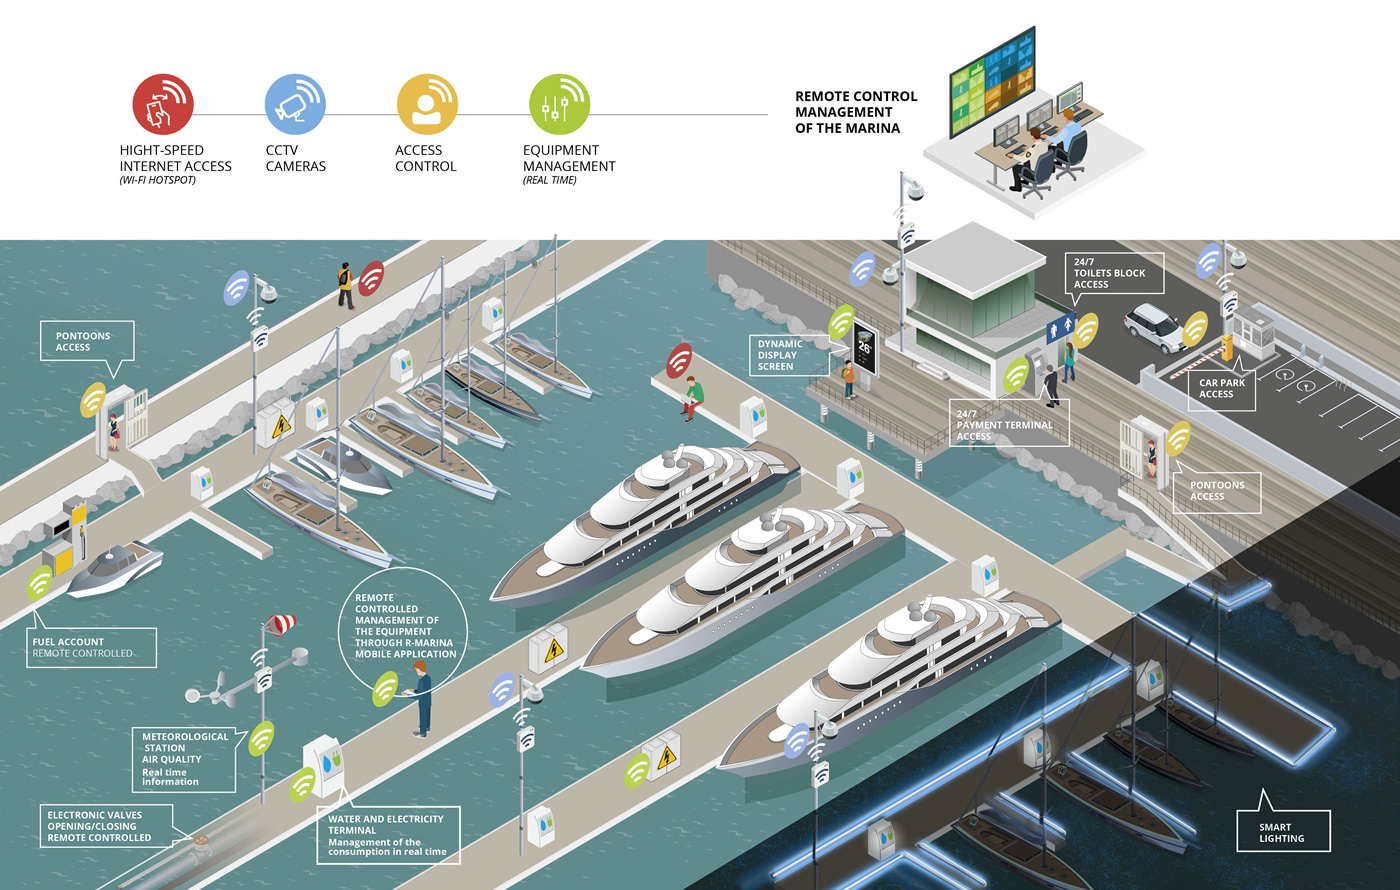 Remote control management of the marina